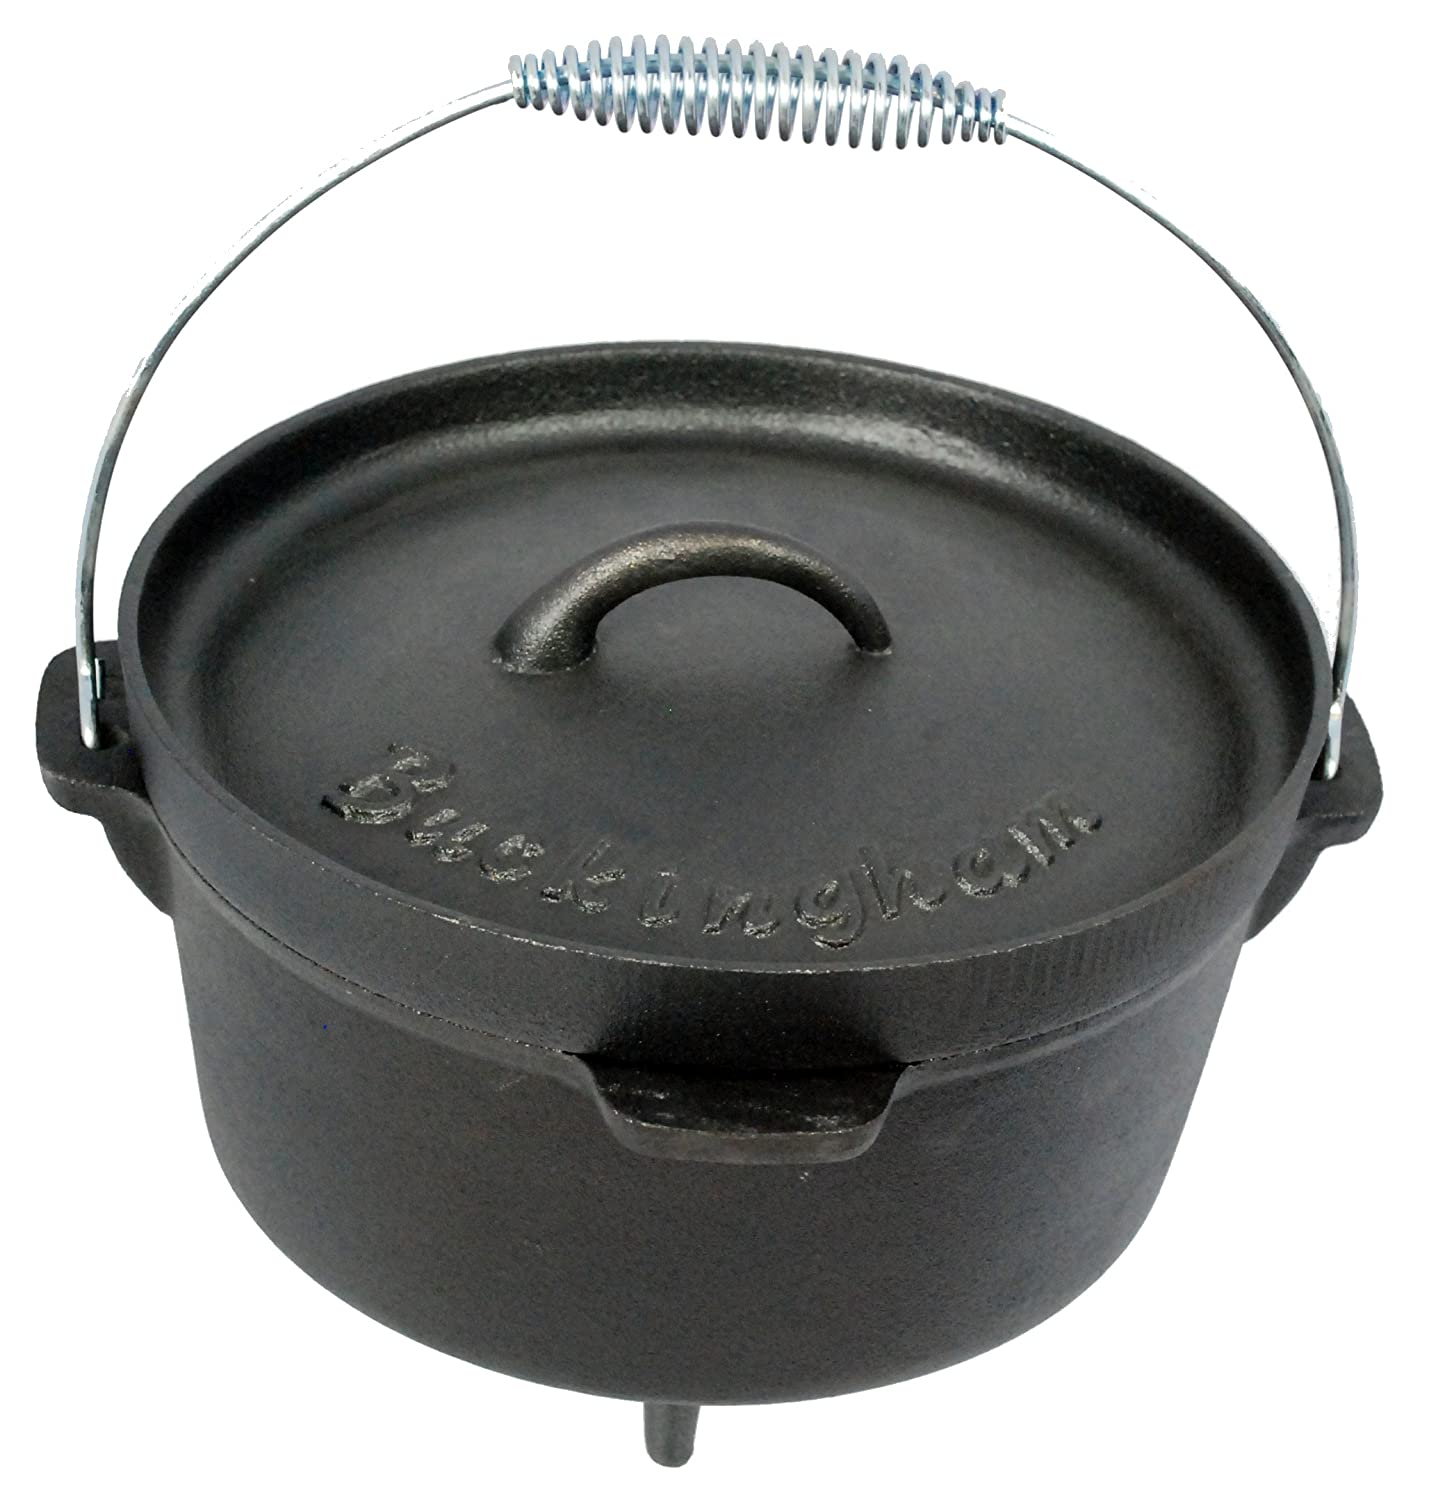 Buckingham 24 cm 4 Litre Cast iron Pre-Seasoned Cast-Iron Camp Dutch Oven, Black B & I International 30071